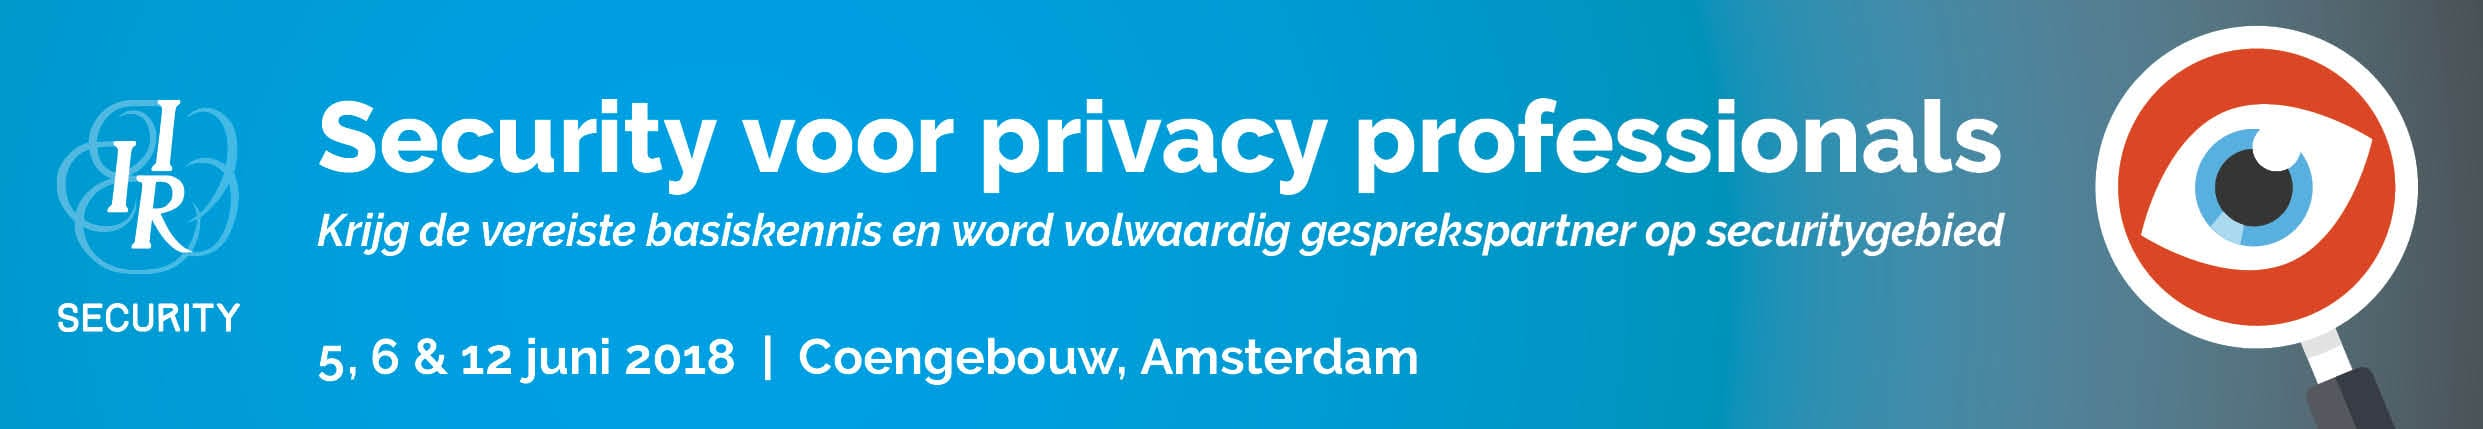 Security voor Privacy Professionals | IIR